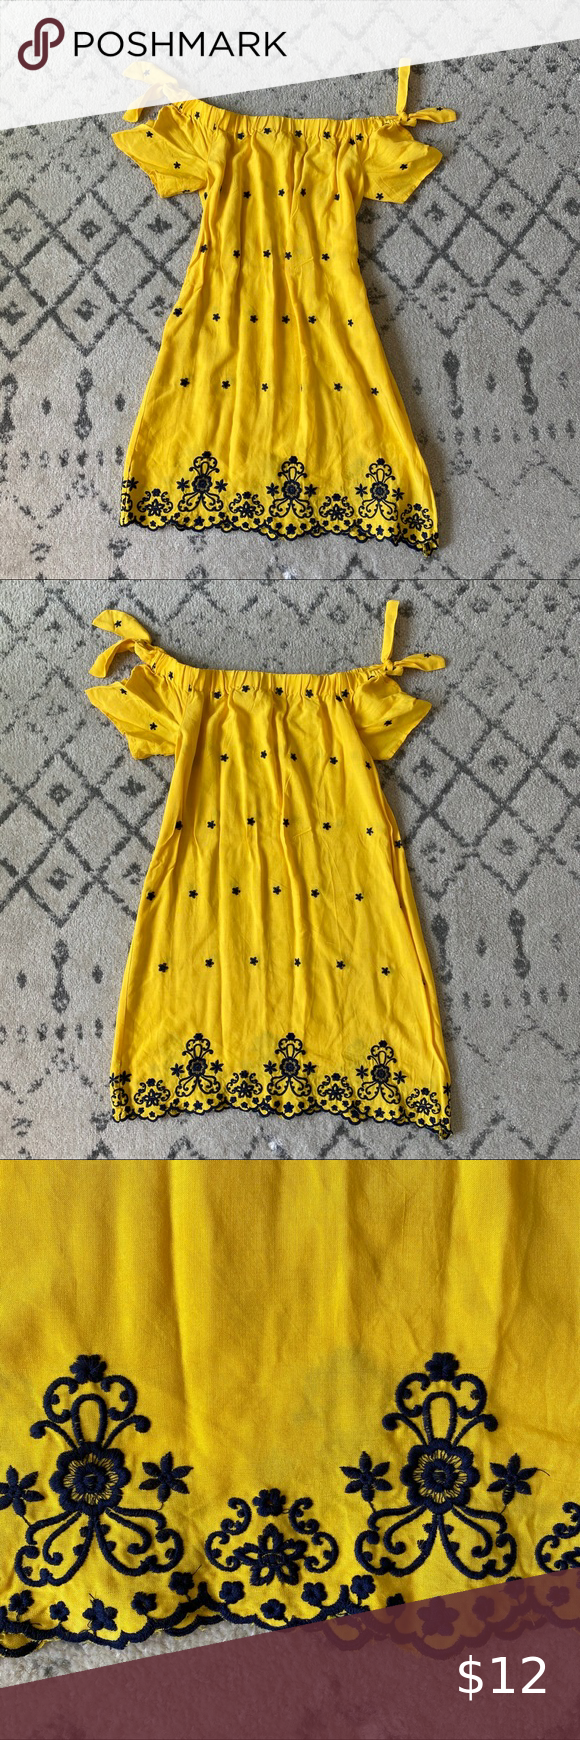 Yellow Off The Shoulder Dress Never Worn Dresses Bright Yellow Dress Shoulder Dress [ 1740 x 580 Pixel ]